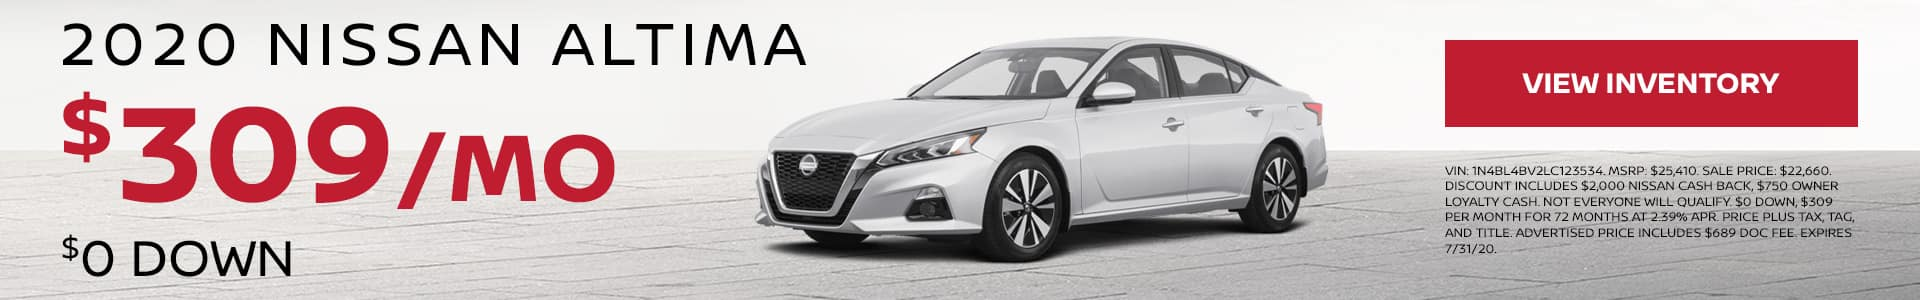 2020 Nissan Altima $0 Down $309 per month